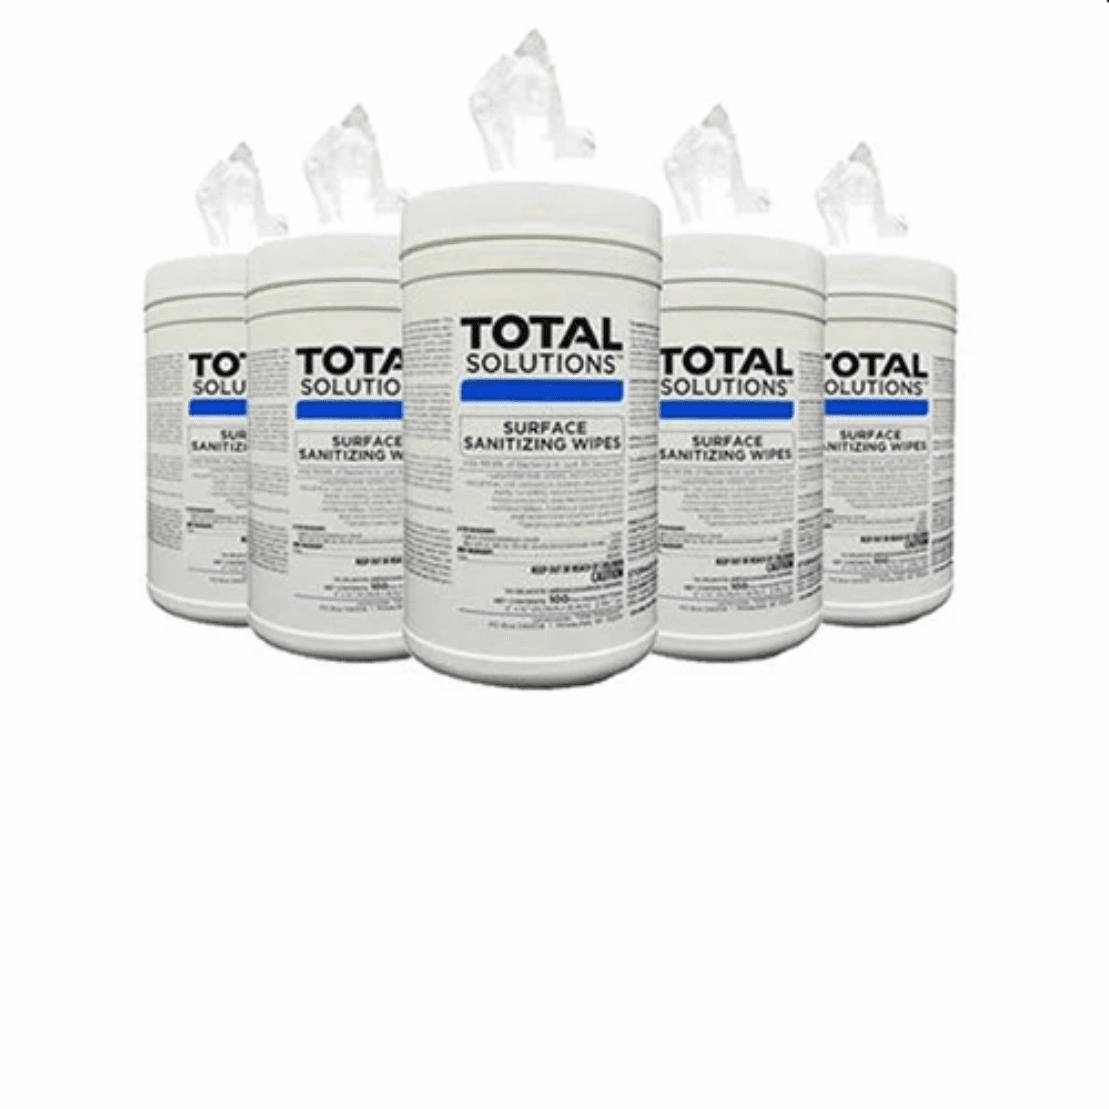 "Total Solutions Surface Disinfectant Wipes - 1 Case (6 Canisters, 6"" x 10"", 100 count)** LIMITED AVAILABILITY COULD CAUSE DELAY **"